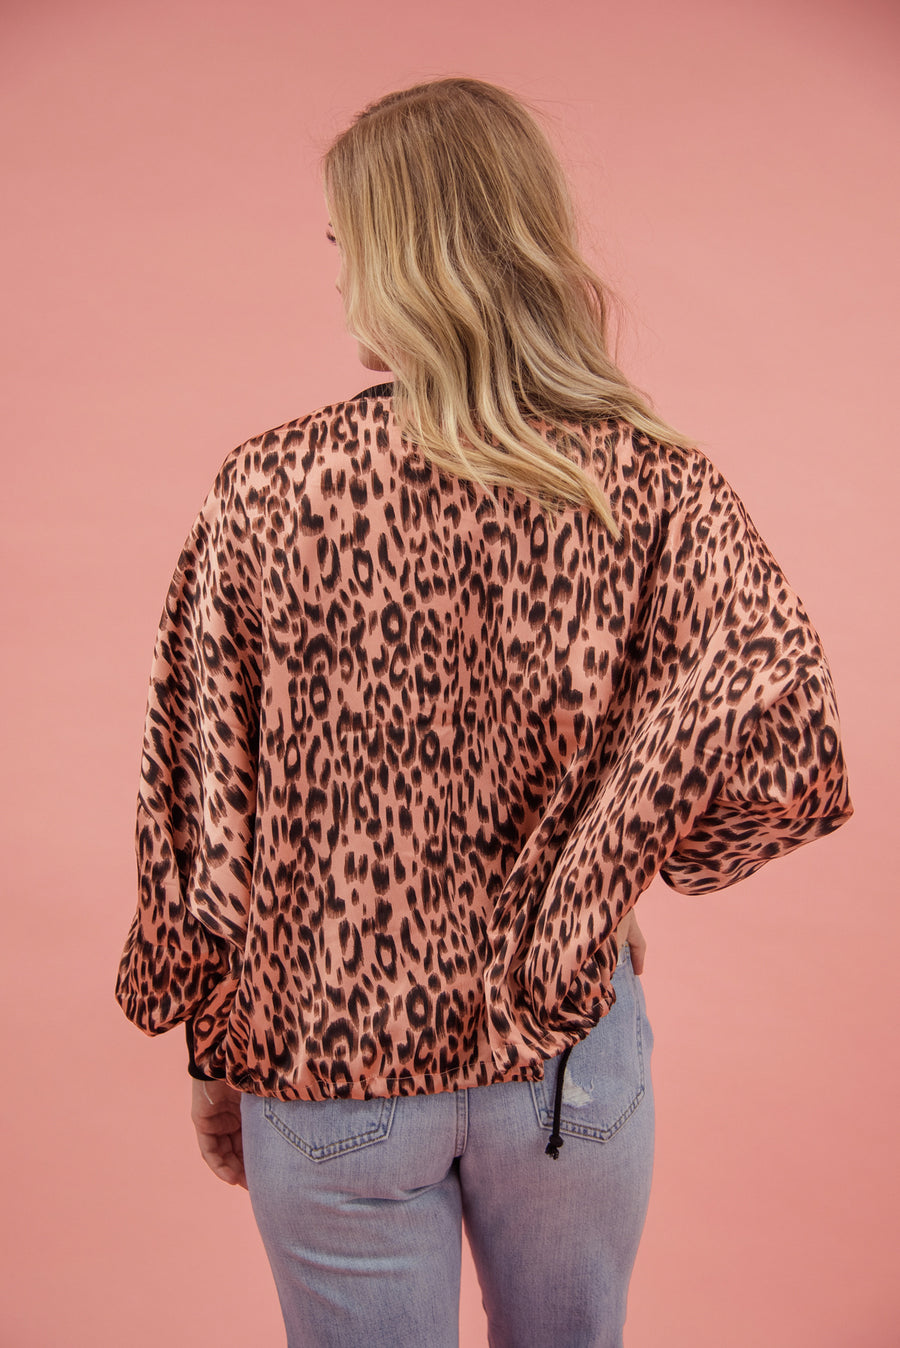 JACK BY BB DAKOTA: LIKE IT RAWR CHEETAH BOMBER-ROSE